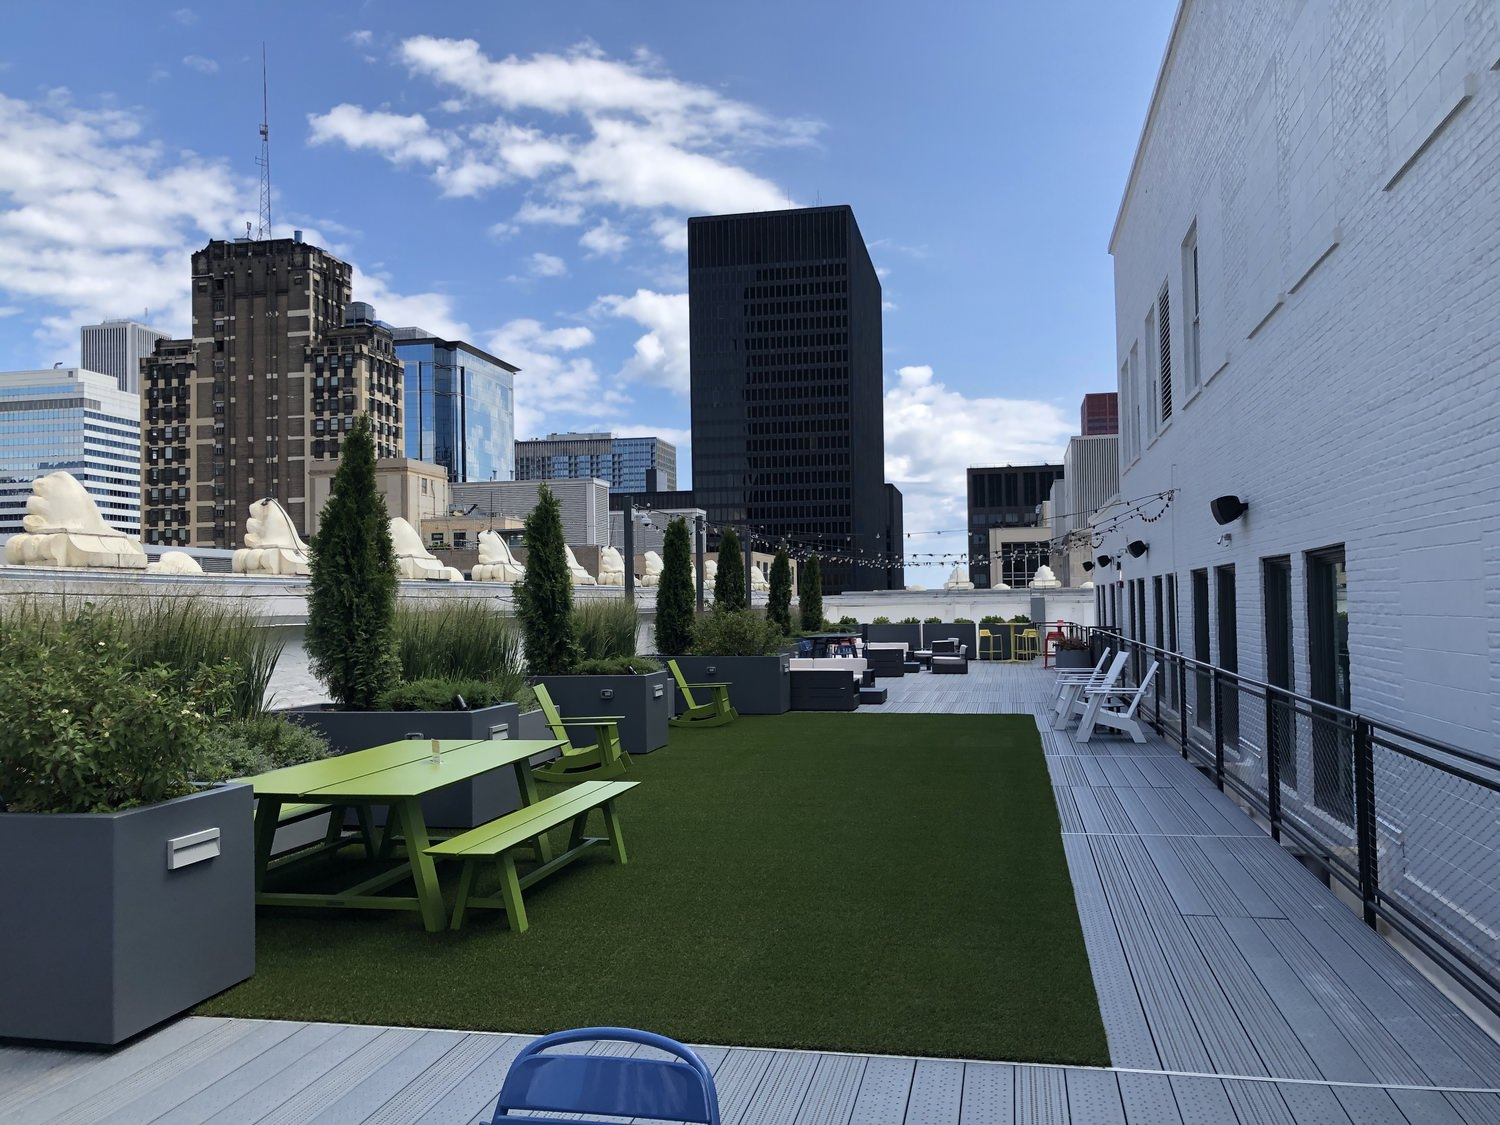 A courtyard that has grass and outdoor furniture that is on top of a building in the middle of a city.